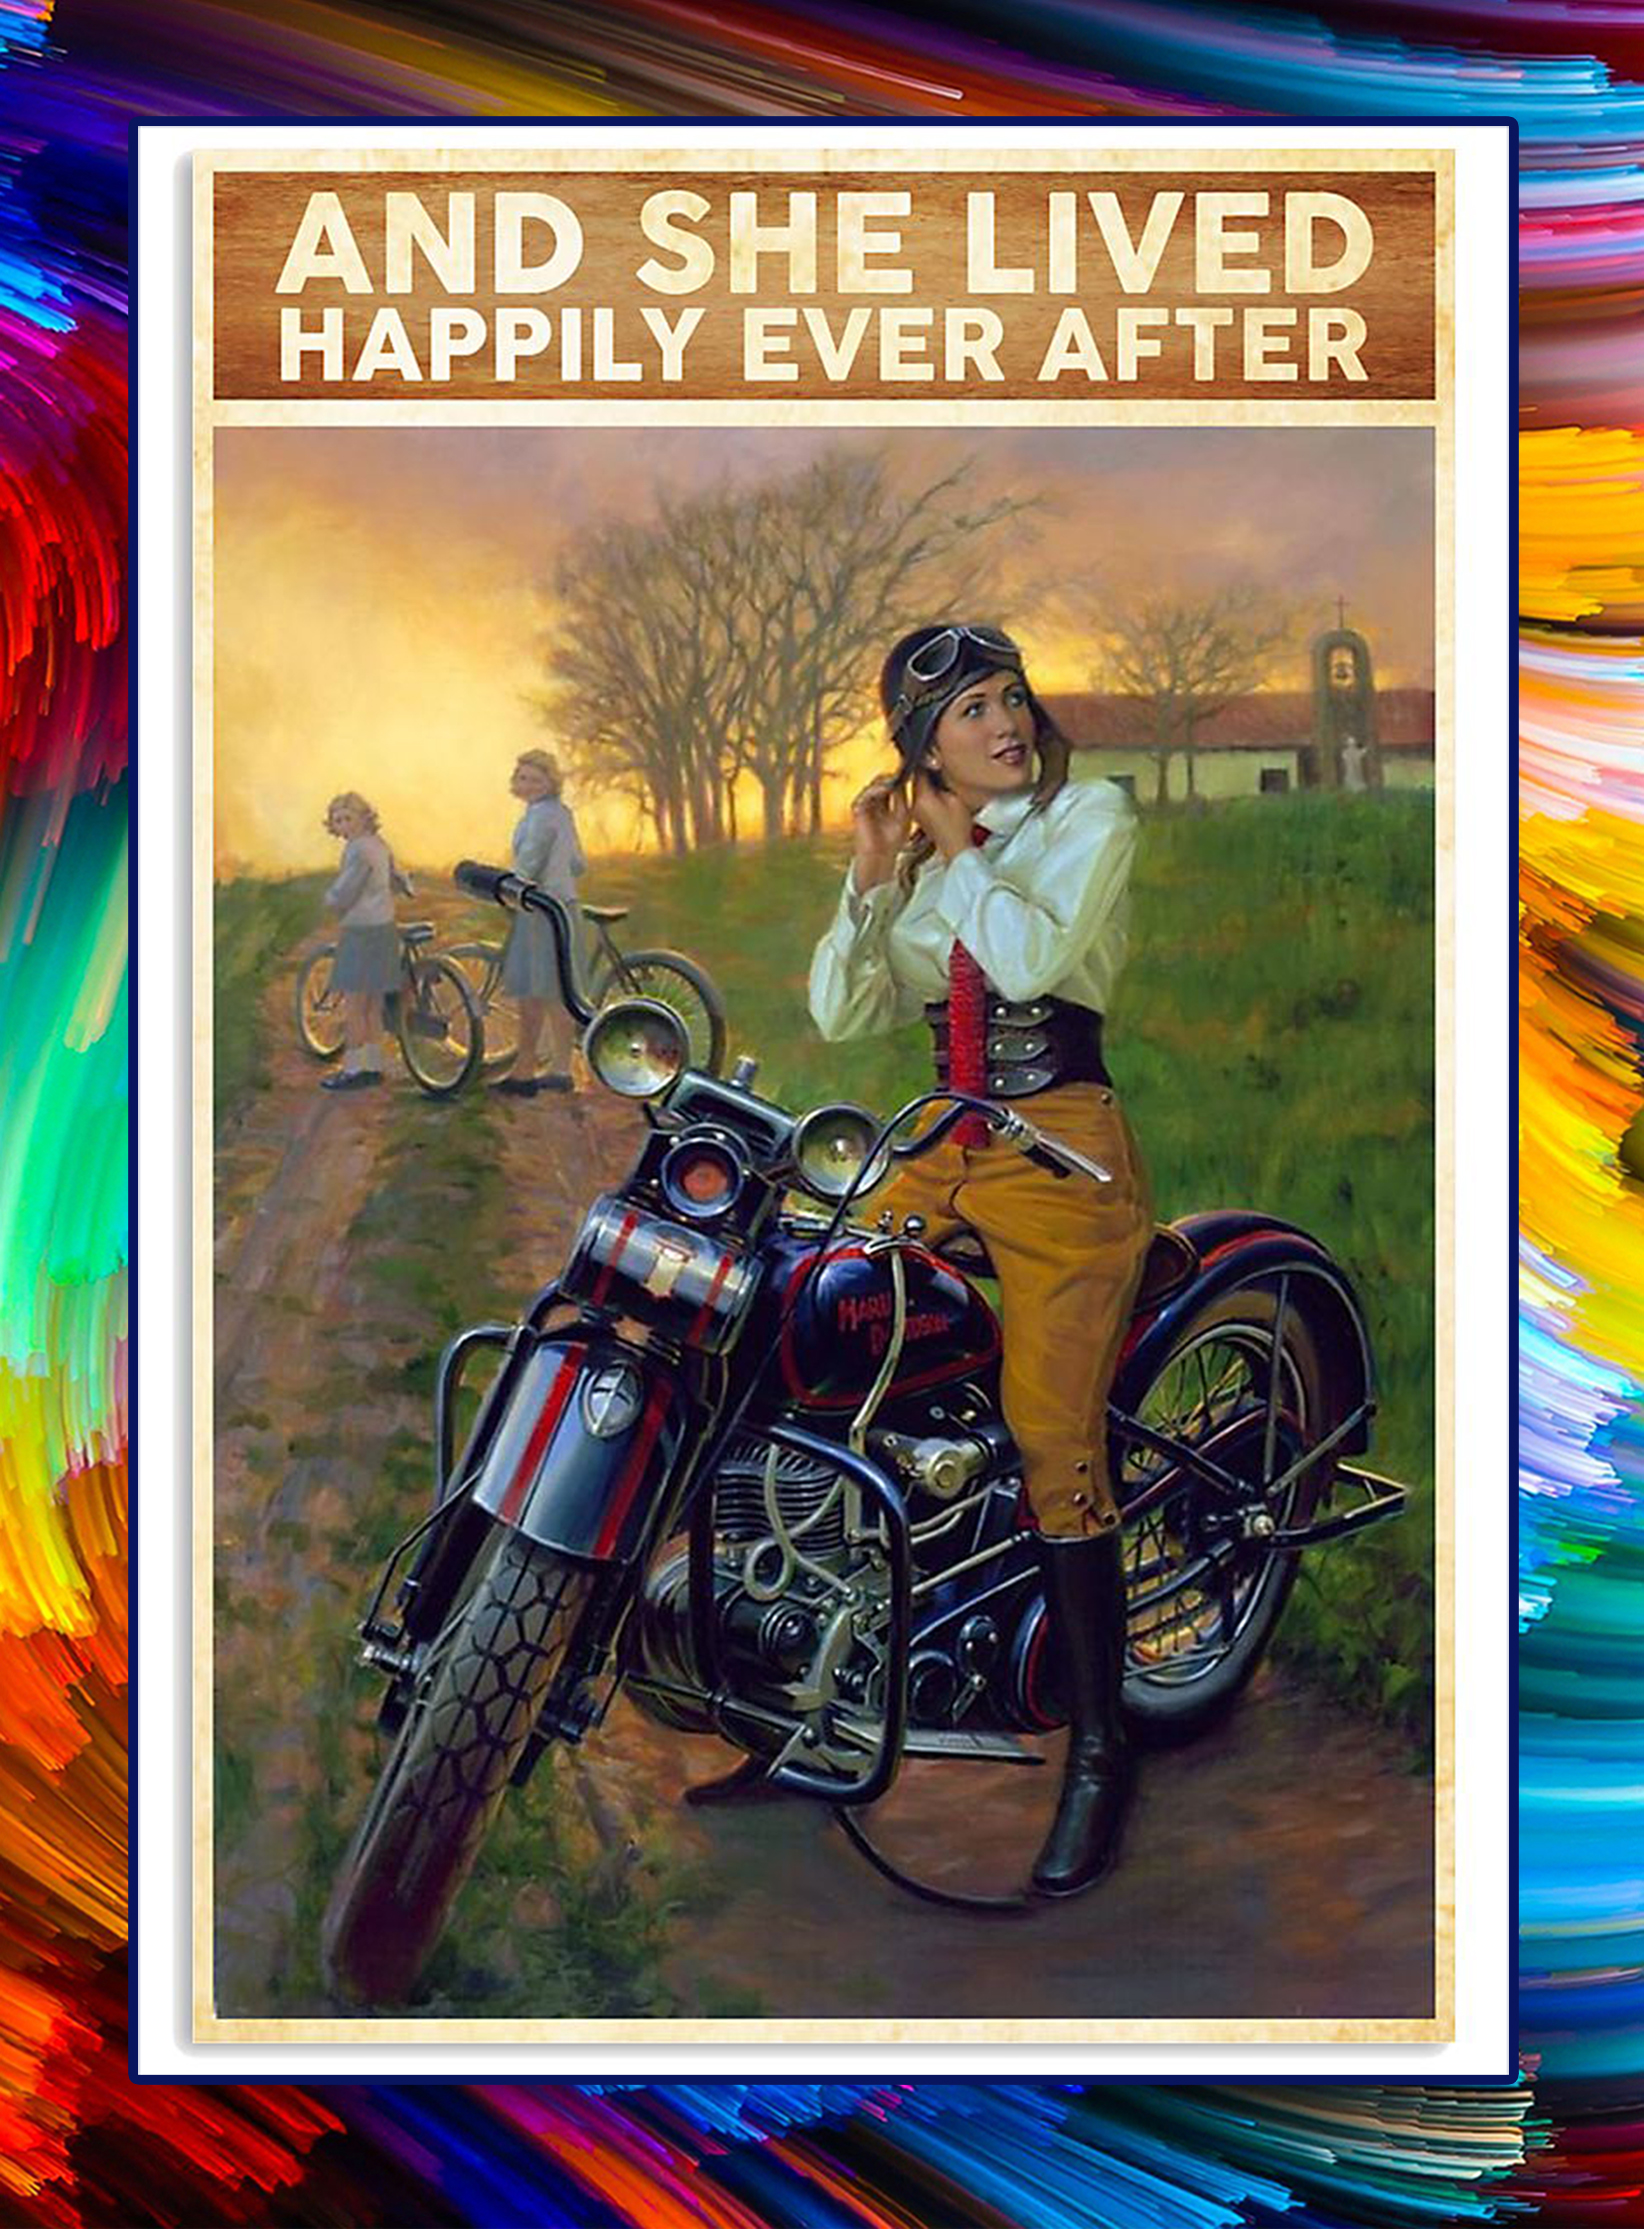 Motorcycle And she lived happily ever after poster - A1